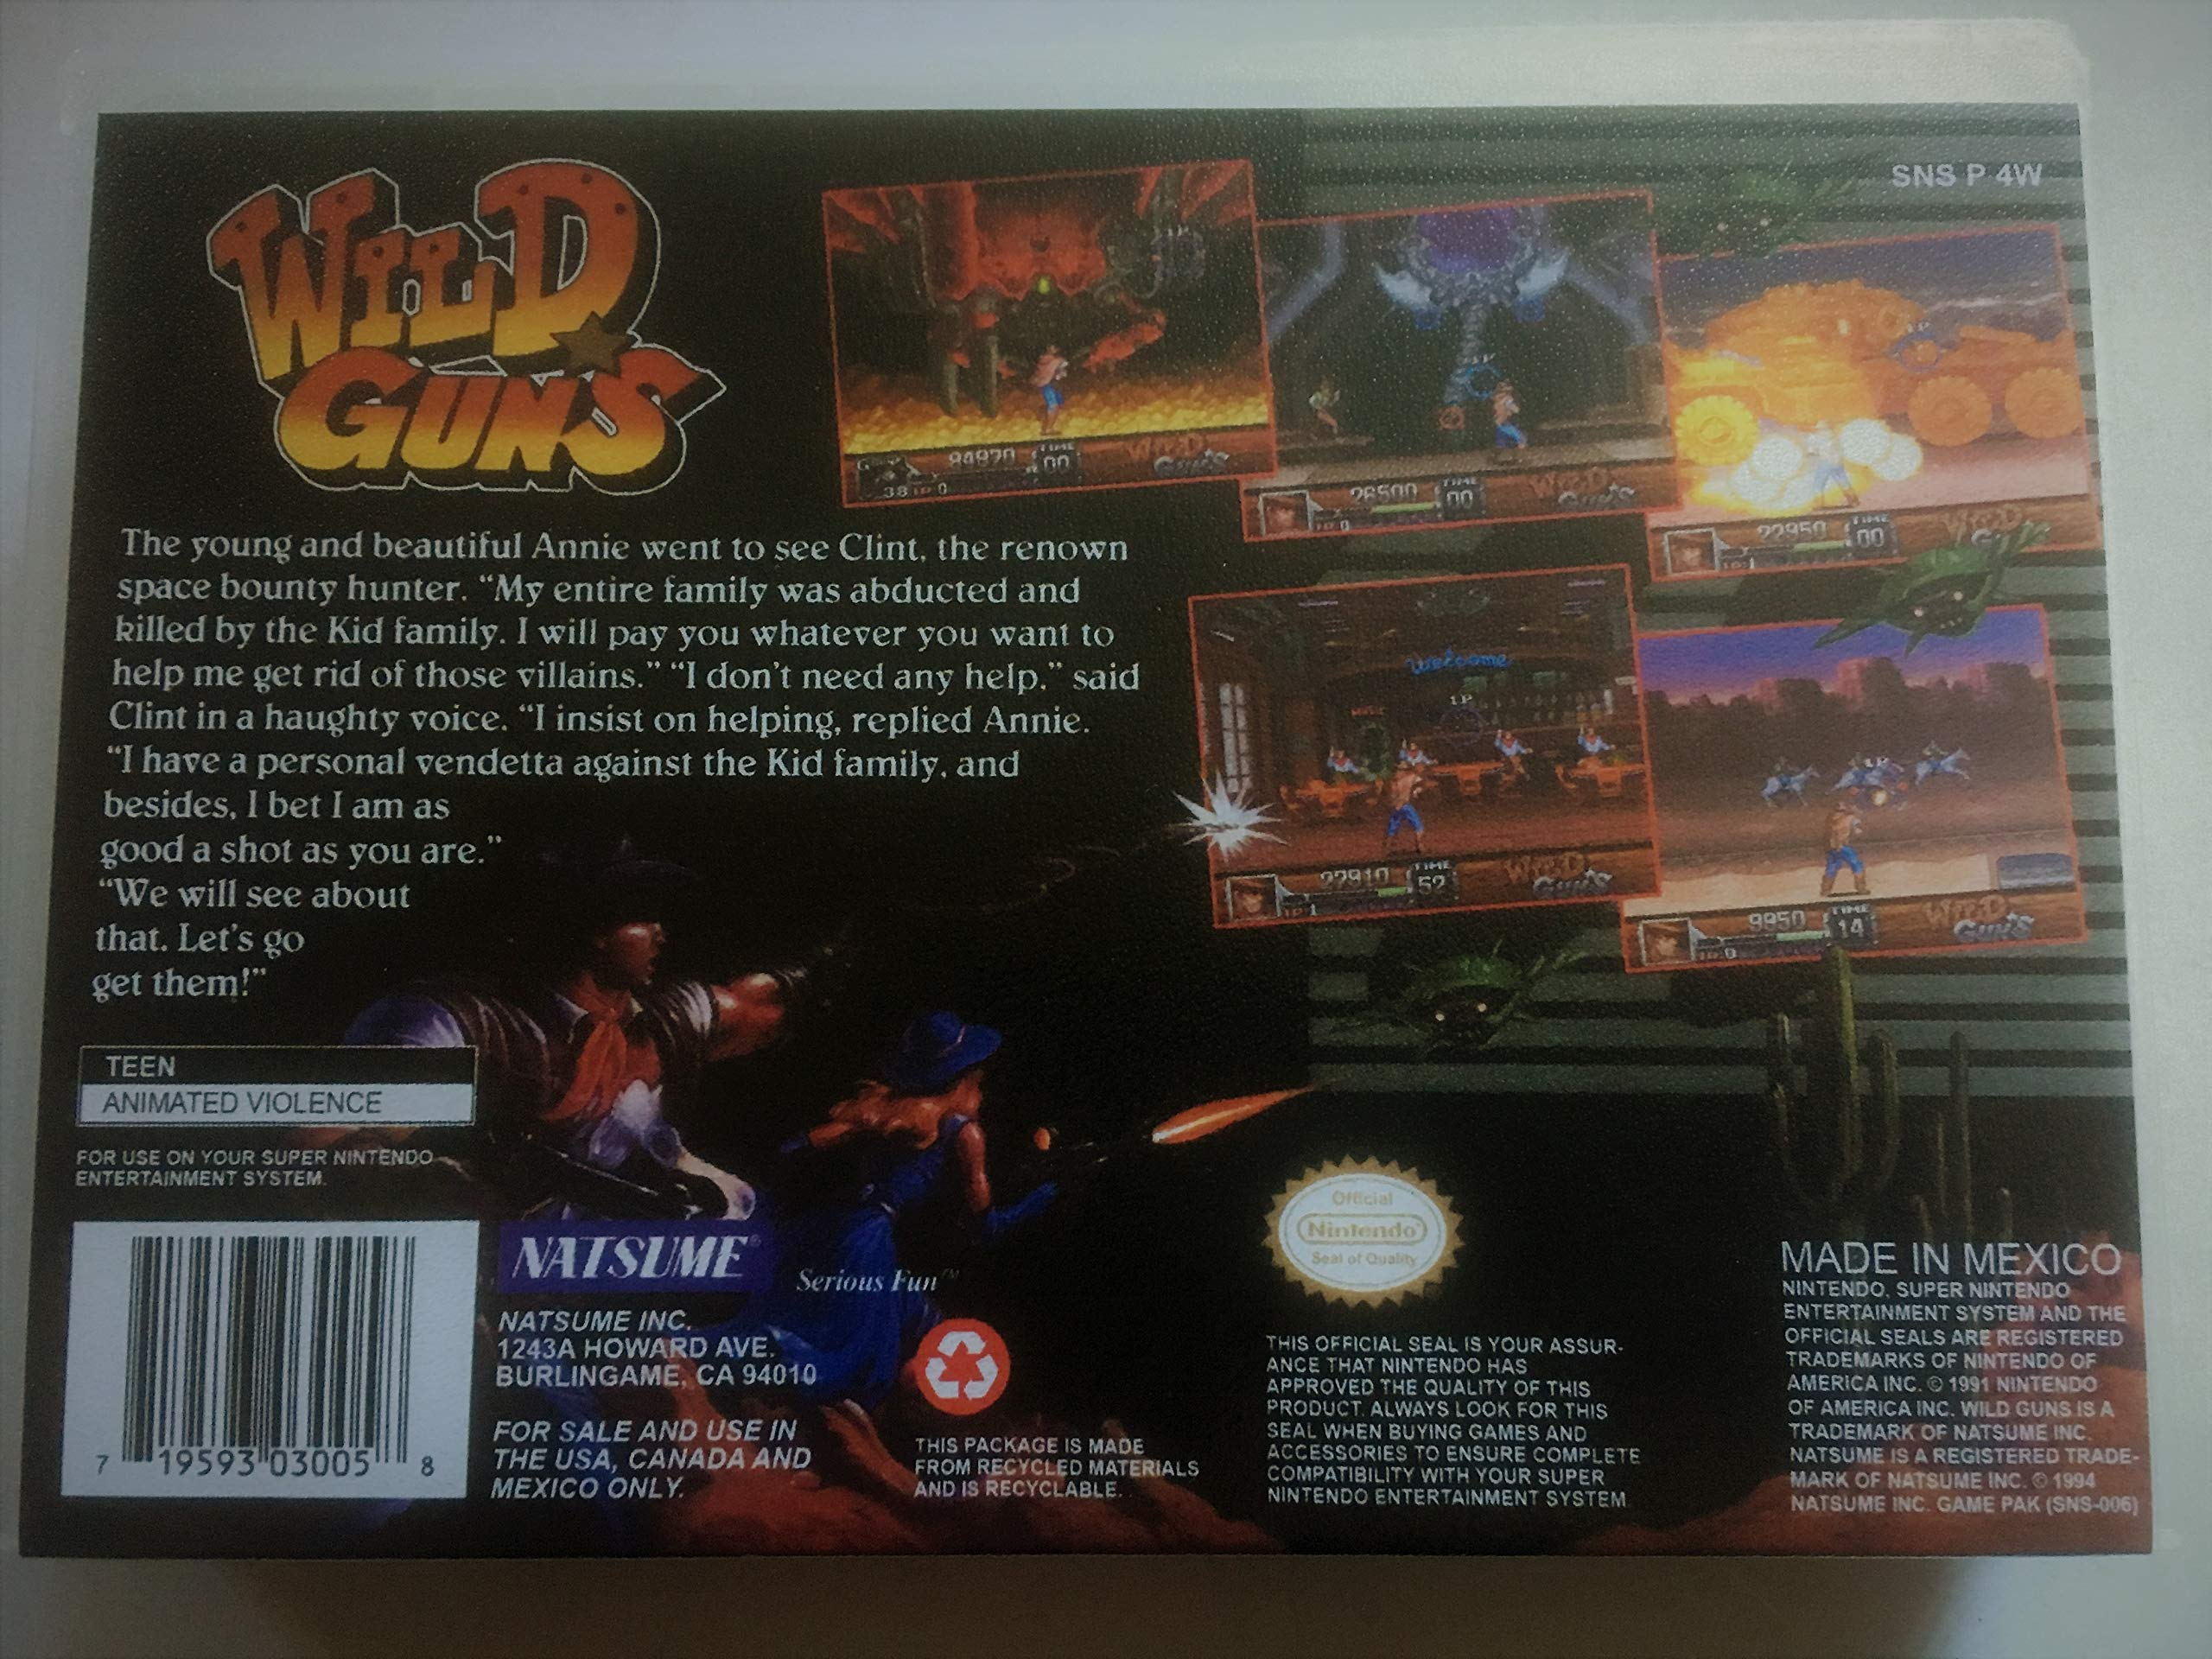 Amazon.com: Wild Guns (Super Nintendo, SNES) - Reproduction ...